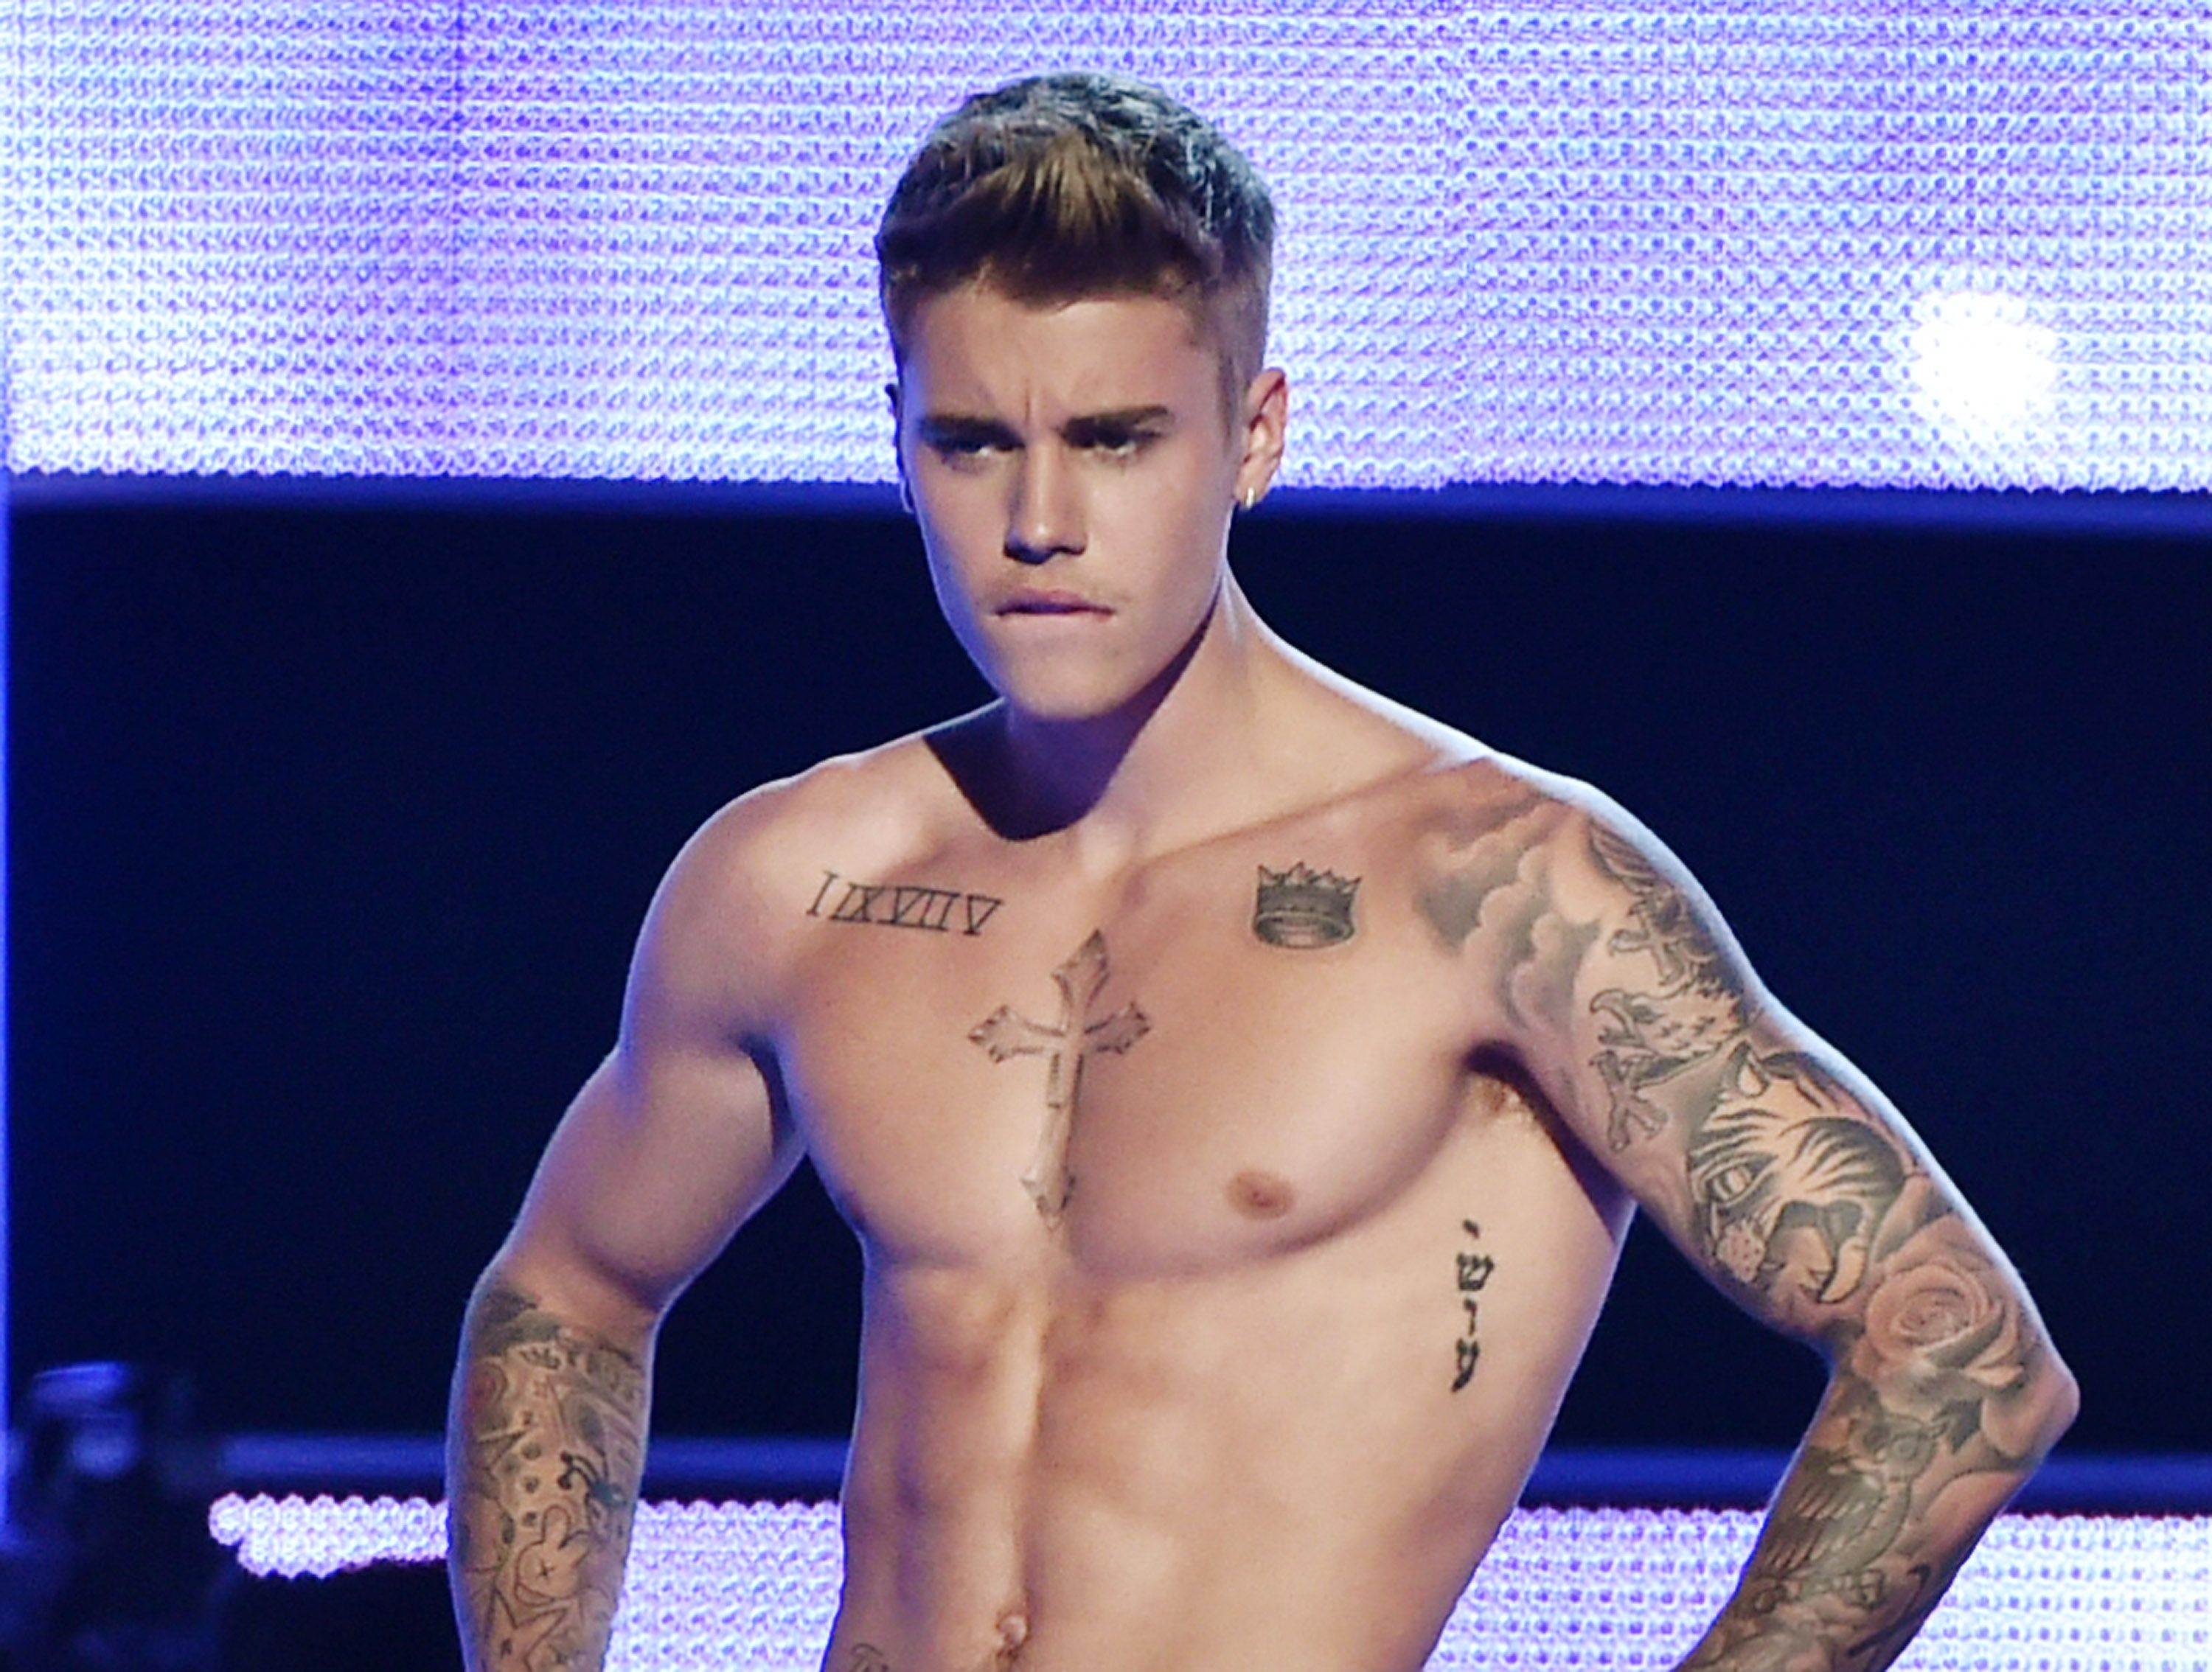 ad59d5fab Justin Bieber's Tattoos - The Meaning Behind Justin Bieber's Tattoos